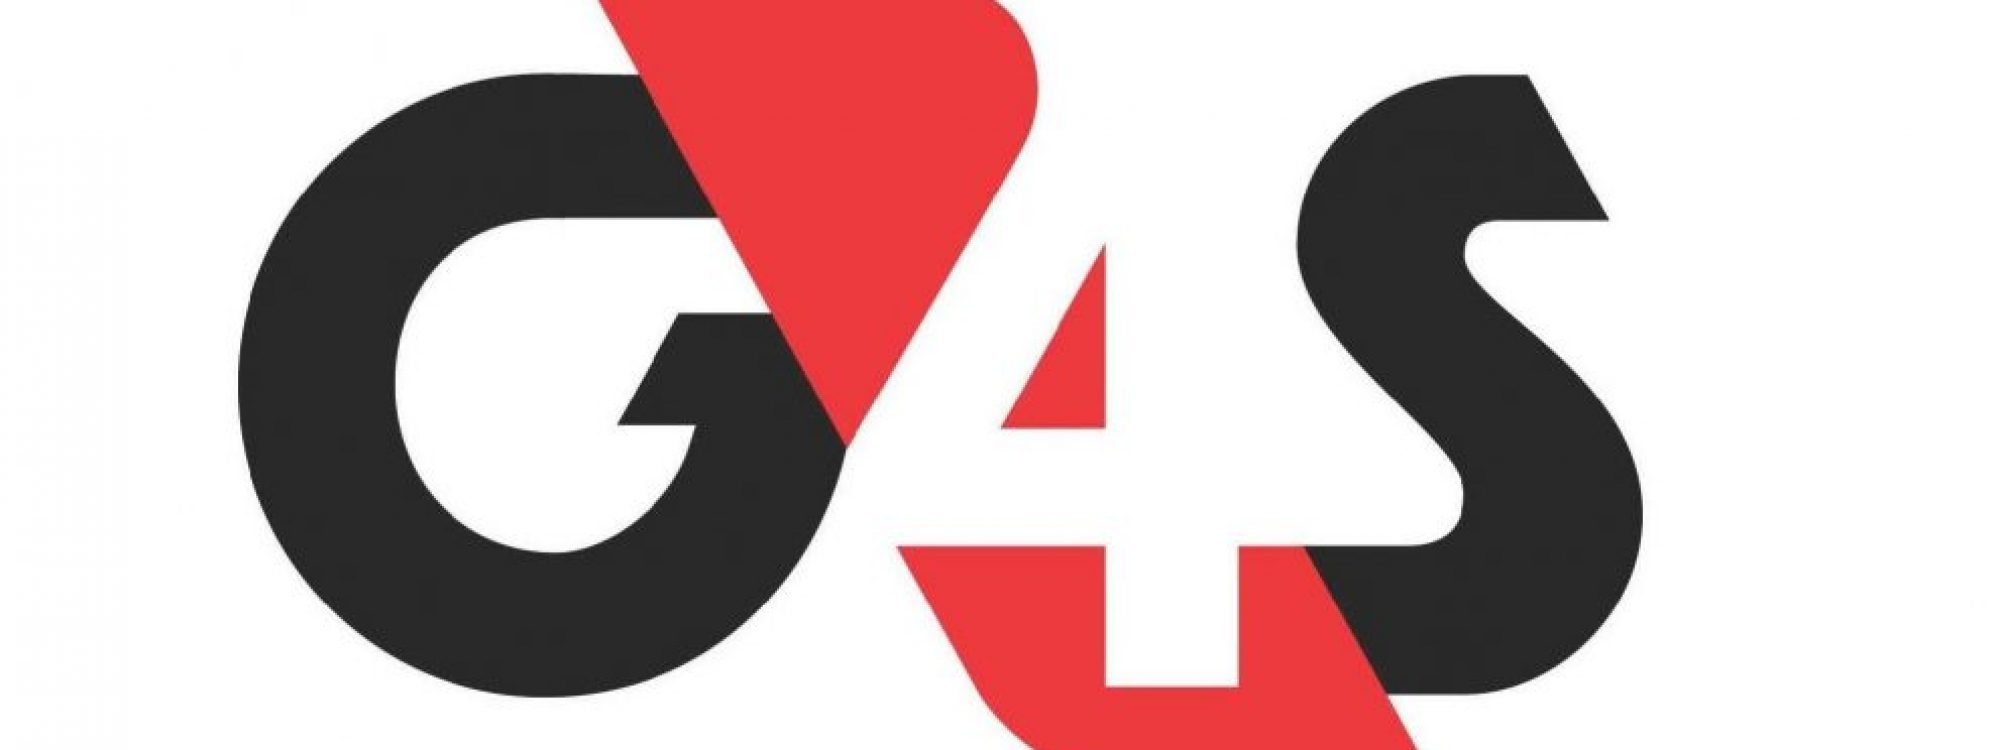 Storm Helps G4S to Streamline Customer Experience